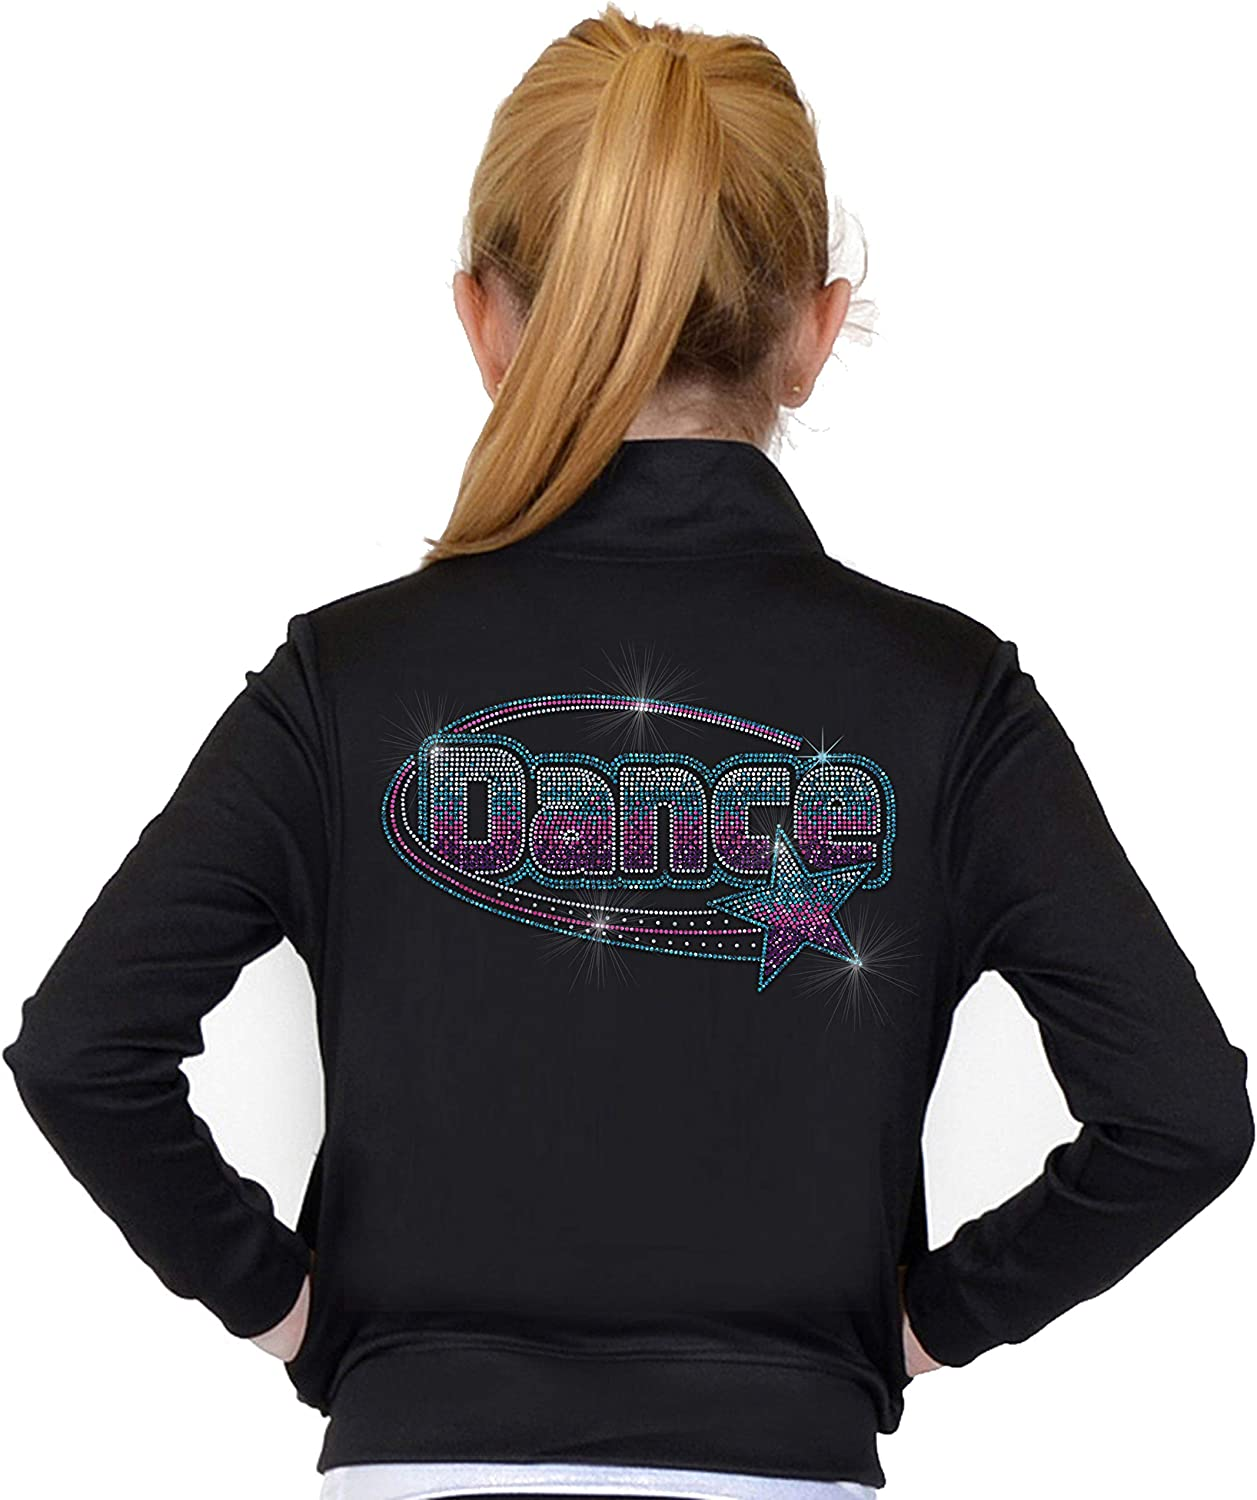 Stretch is Comfort Girl's and Women's Glitter Dance Warm Up Black Jacket